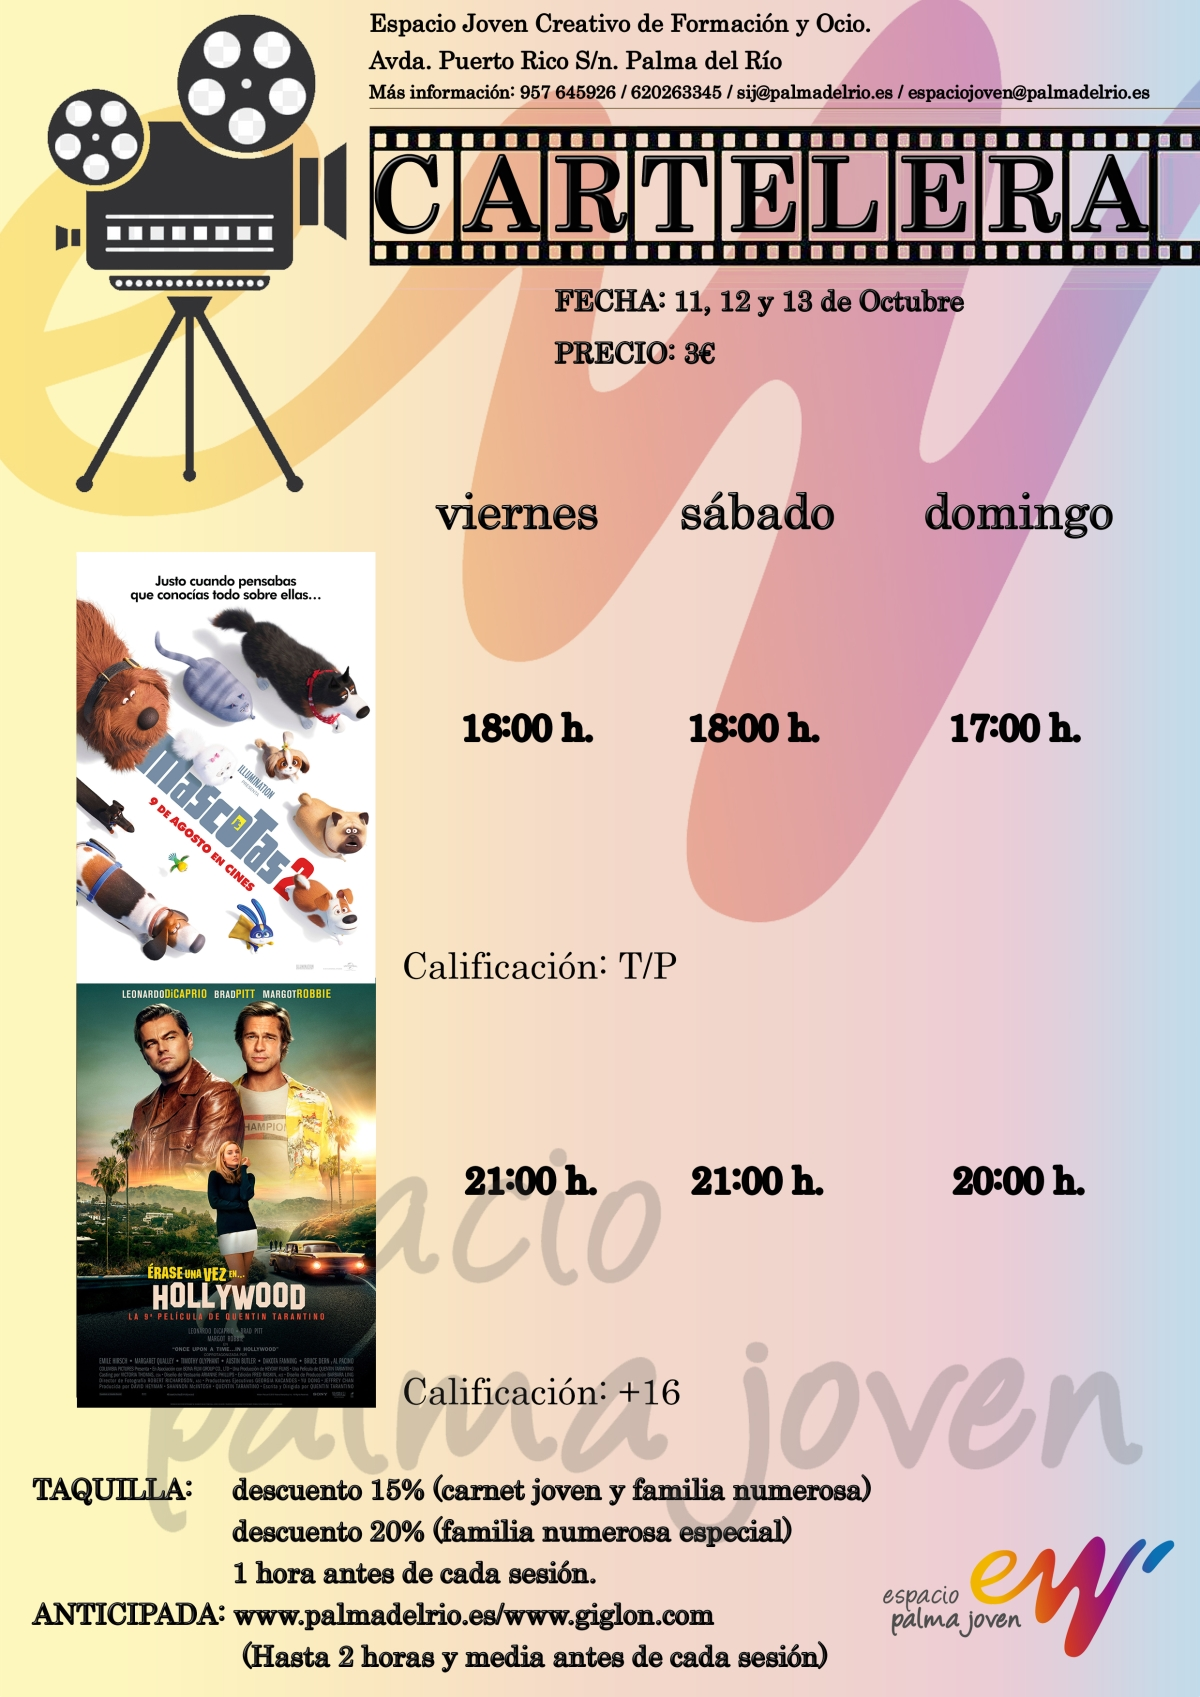 https://www.palmadelrio.es/sites/default/files/cine_11_12_13_octubre_2019.jpg